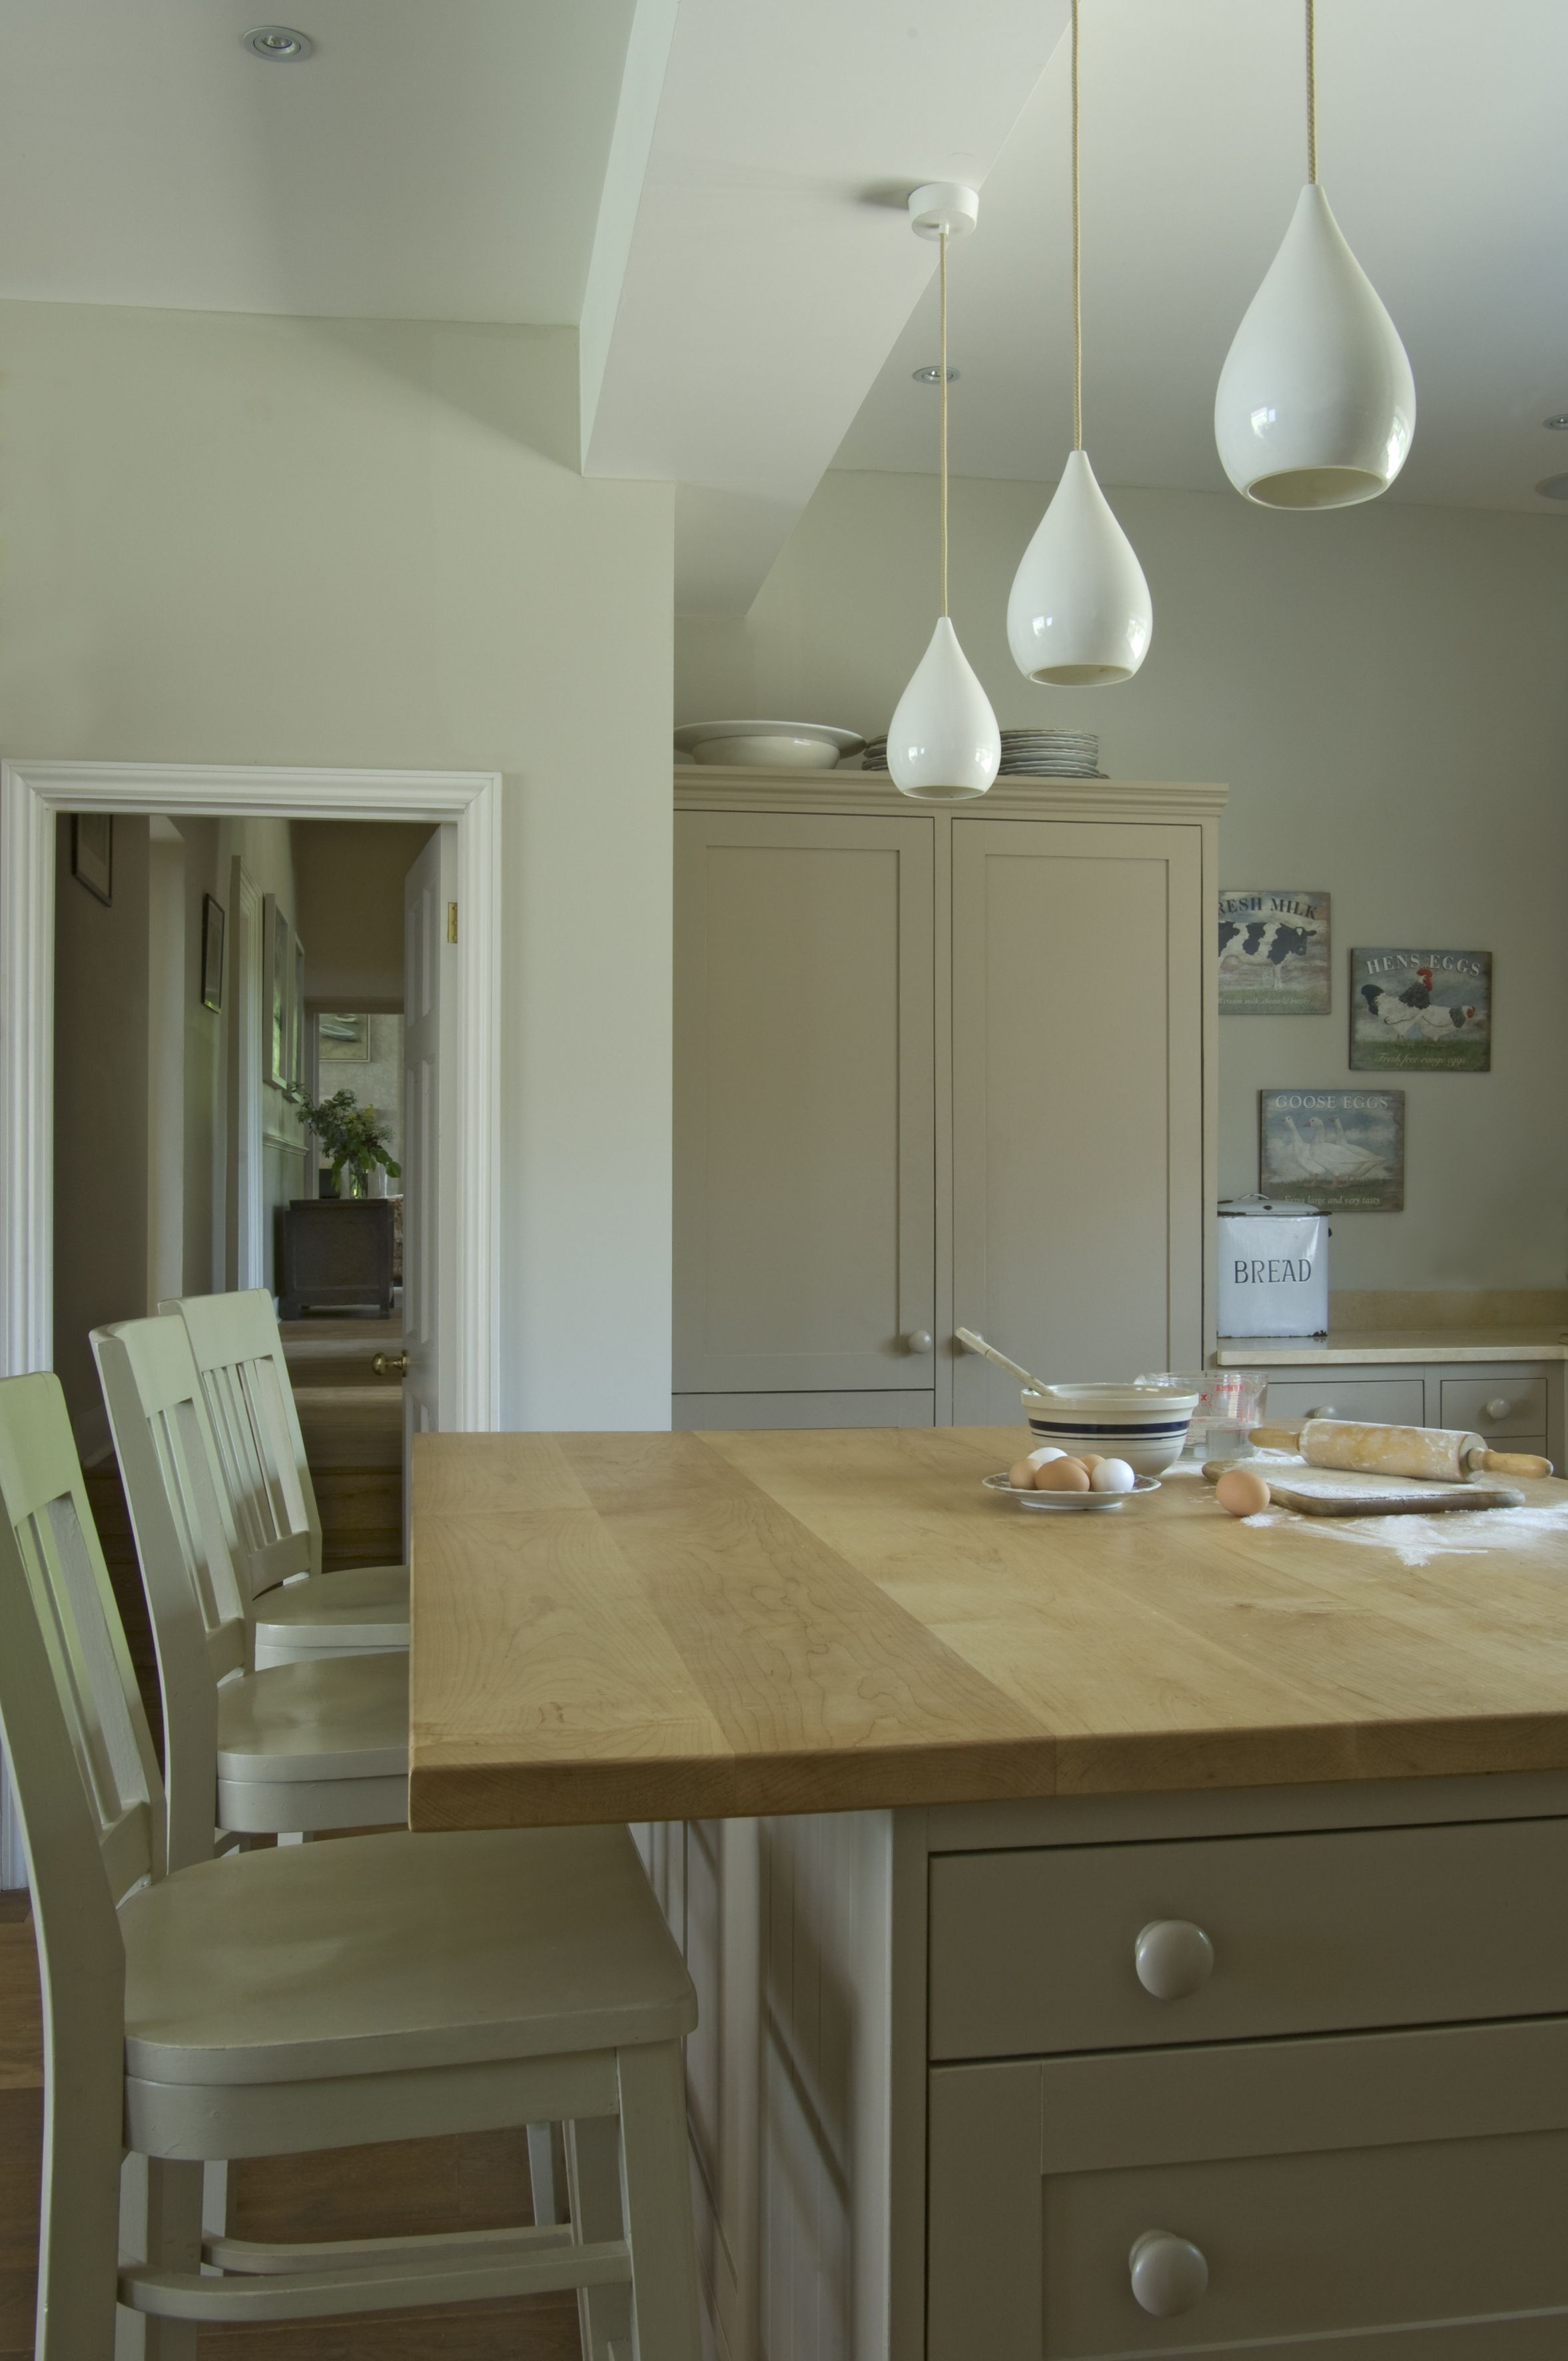 Kitchens Decorating Ideas From Farrow Ball Wall Shaded White Modern Emulsion Woodwork London Stone Estate Eggshell Ceiling Strong